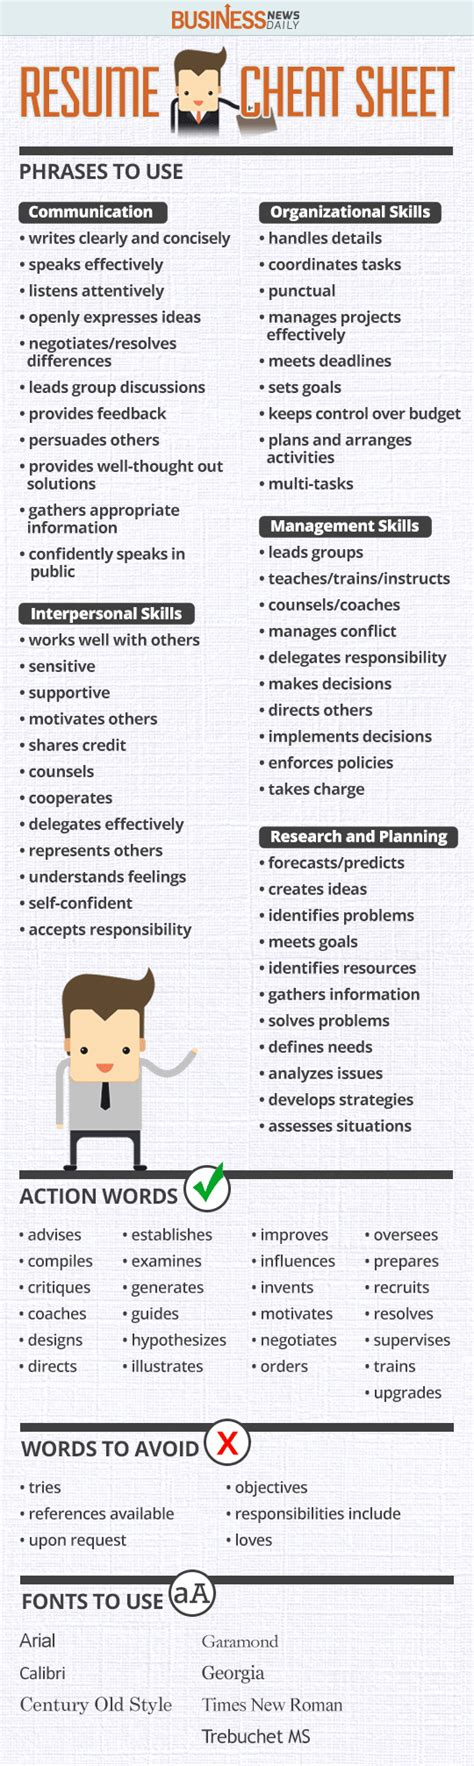 Resume Buzzwords 2018 How To Make Your Cv Compelling. Resume For Sql Dba. Resume For Stay At Home Dad Returning To Work. Examples Of Free Resumes. Best Sample Cover Letter For Resume. Active Directory Resume. Google Resume. Staple A Resume. Resume Inspiration